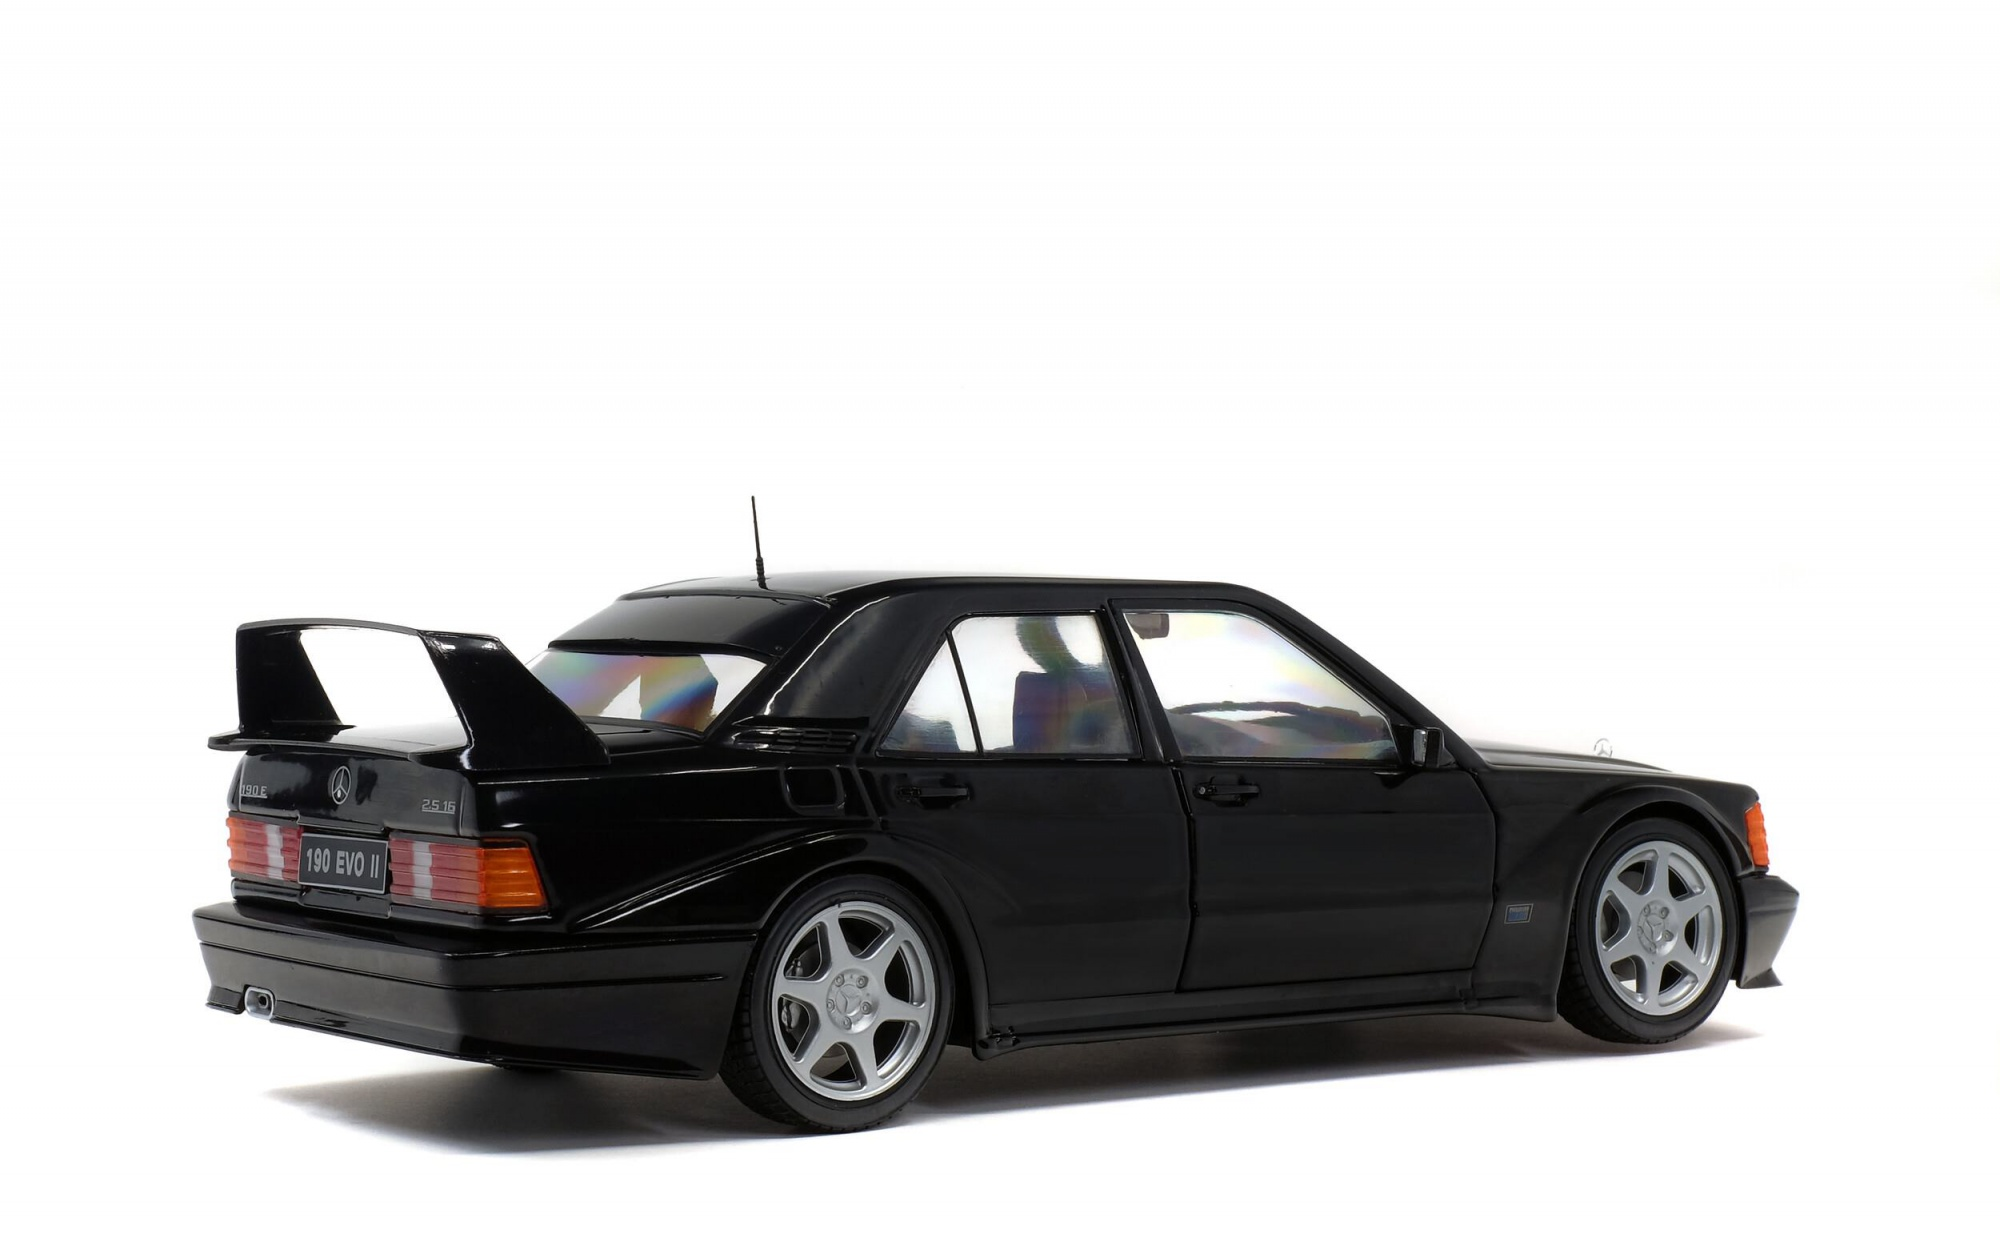 Mercedes 190 EVO II Black 1990